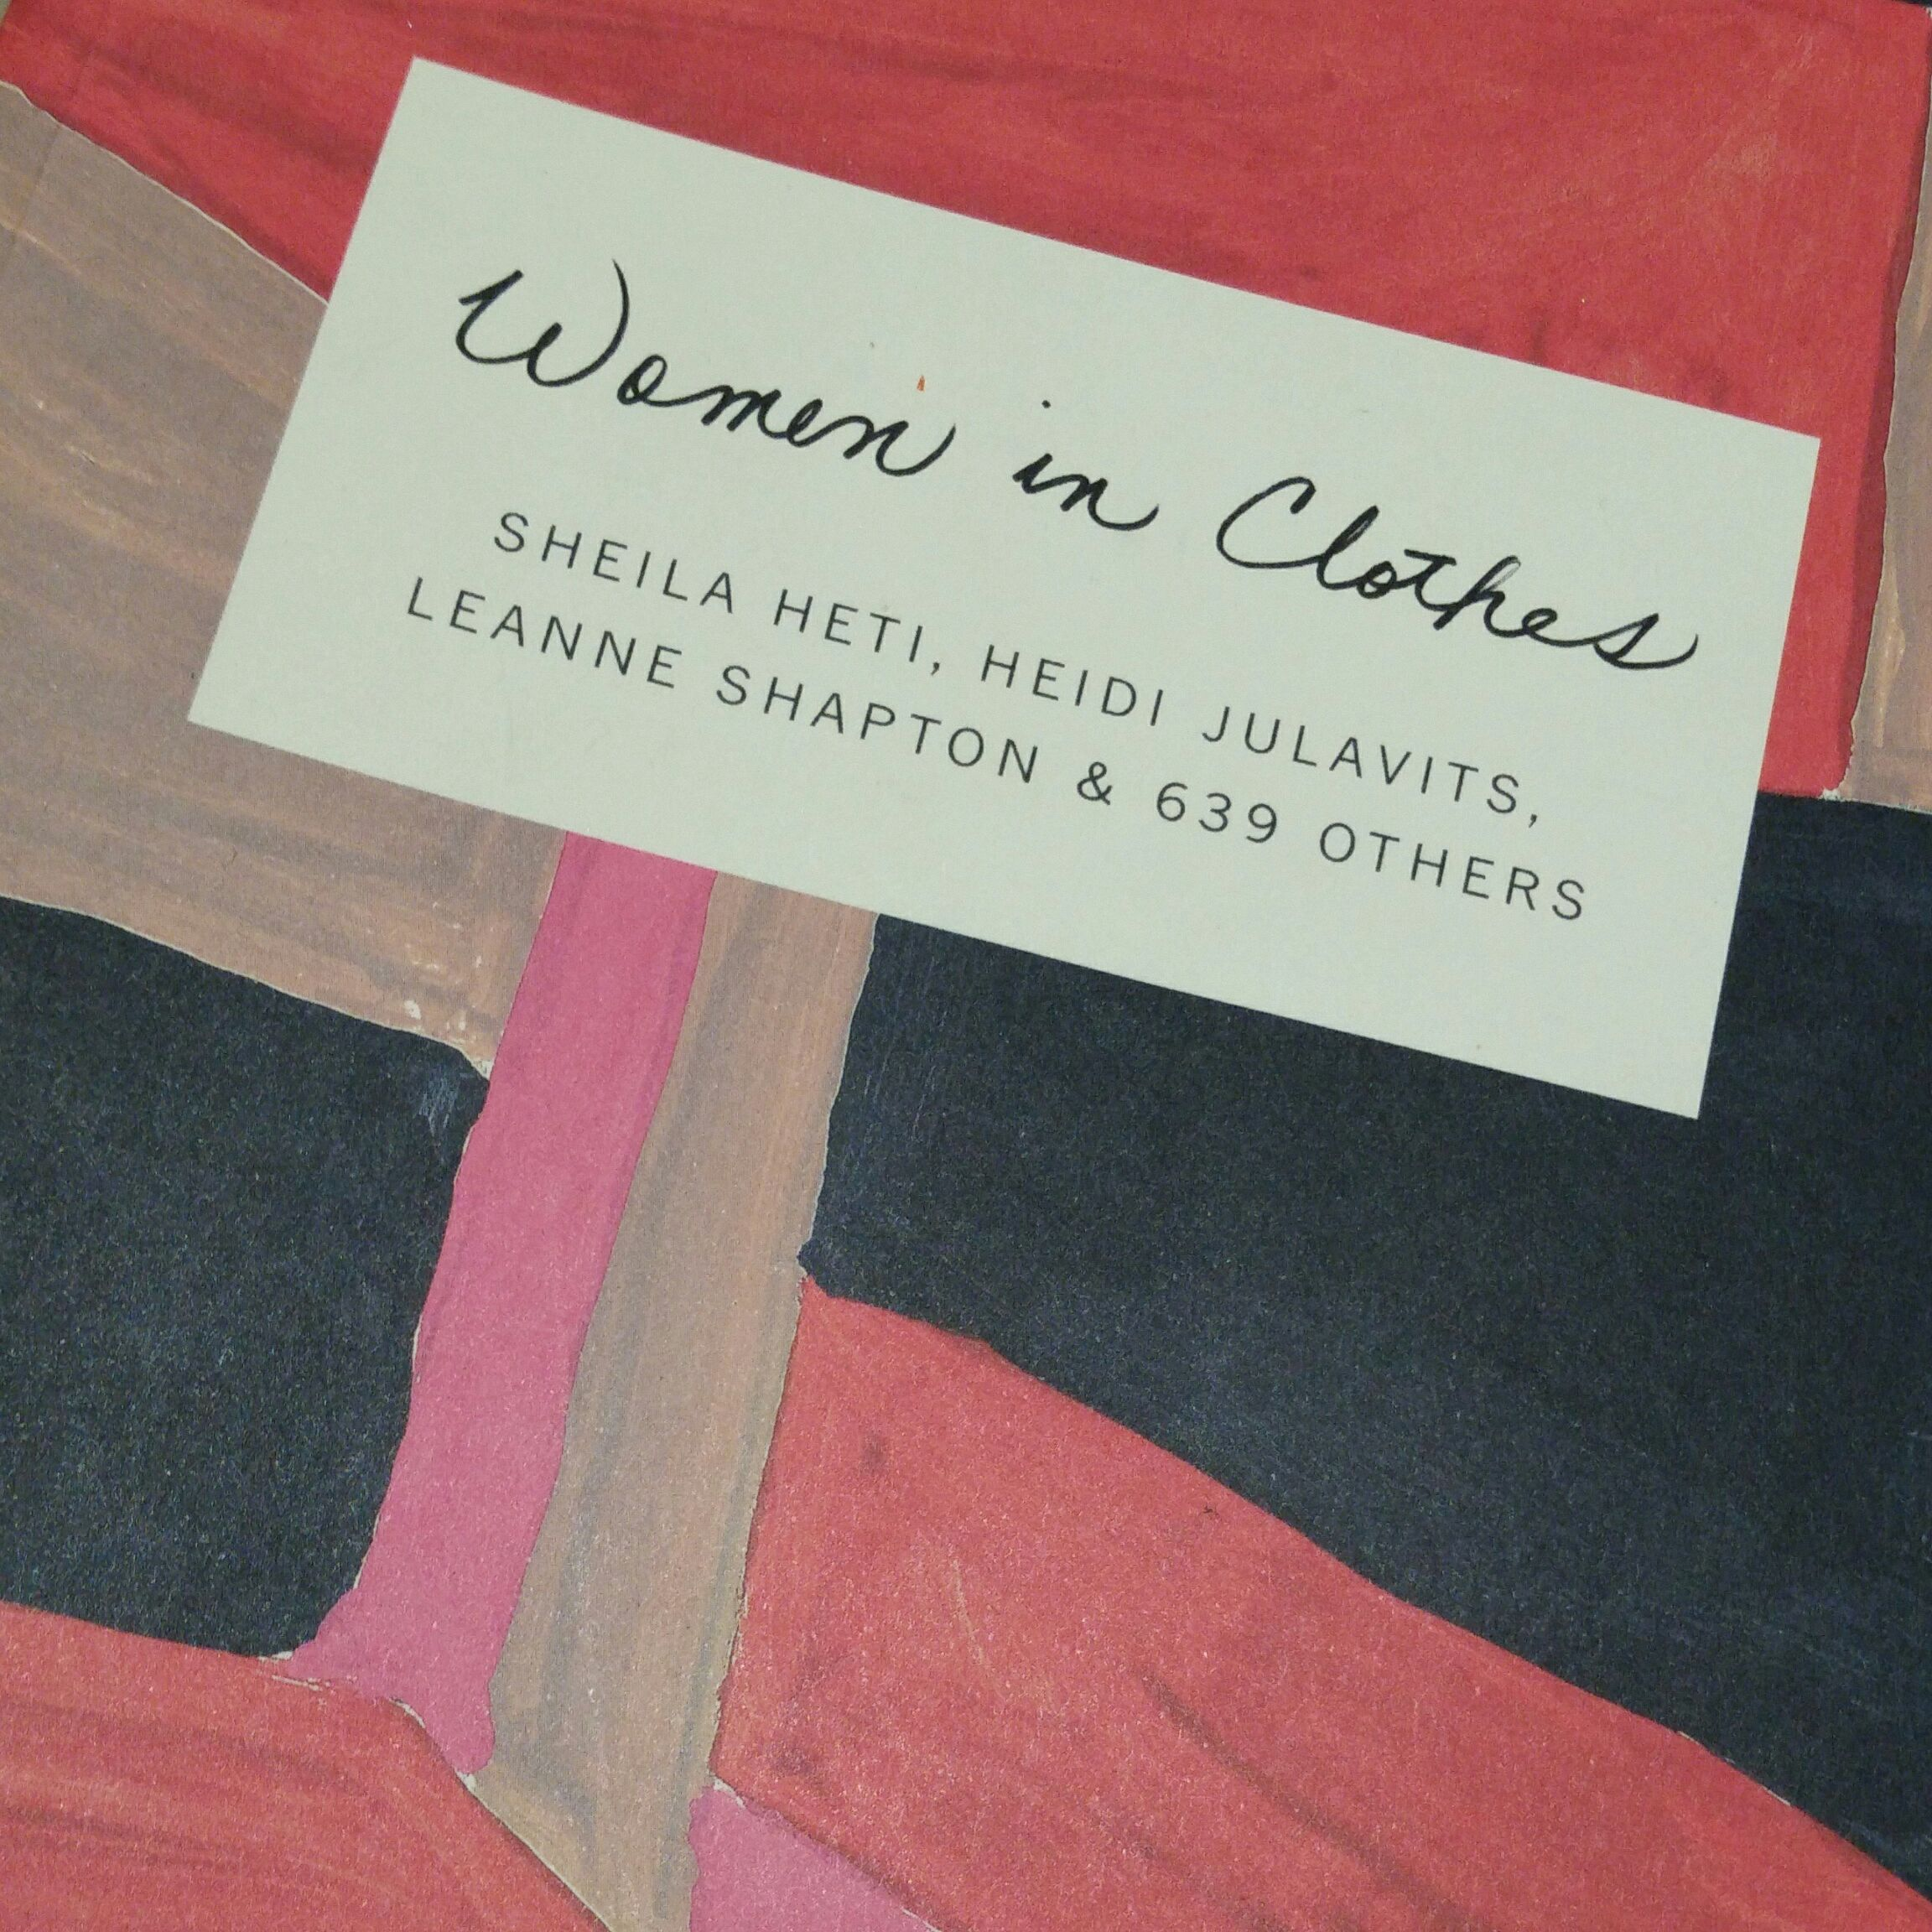 Women in Clothes, Sheila Heti, Heidi Julavits, Leanne Shapton